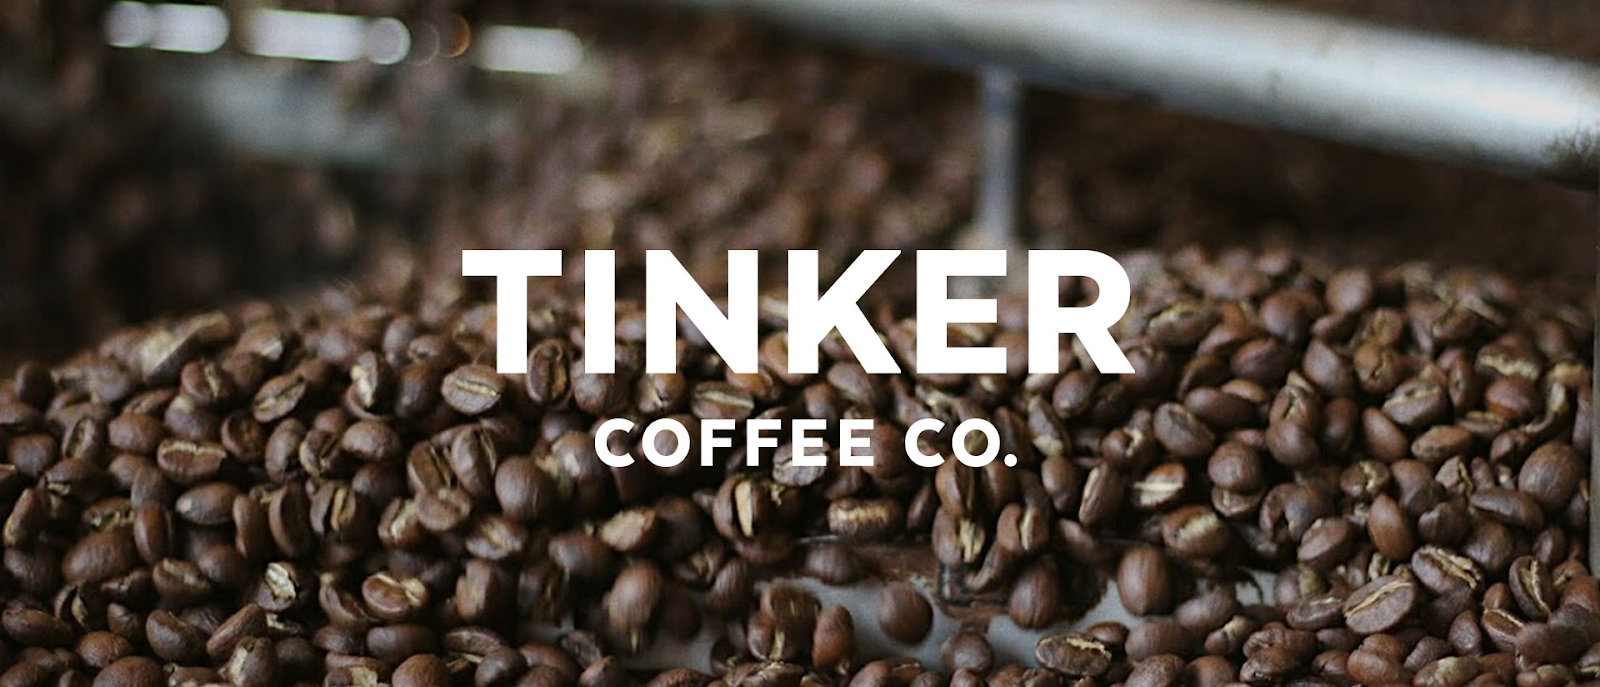 """Coffee beans from Tinker, with """"Tinker Coffee Co."""" overlaid on the image in white text"""